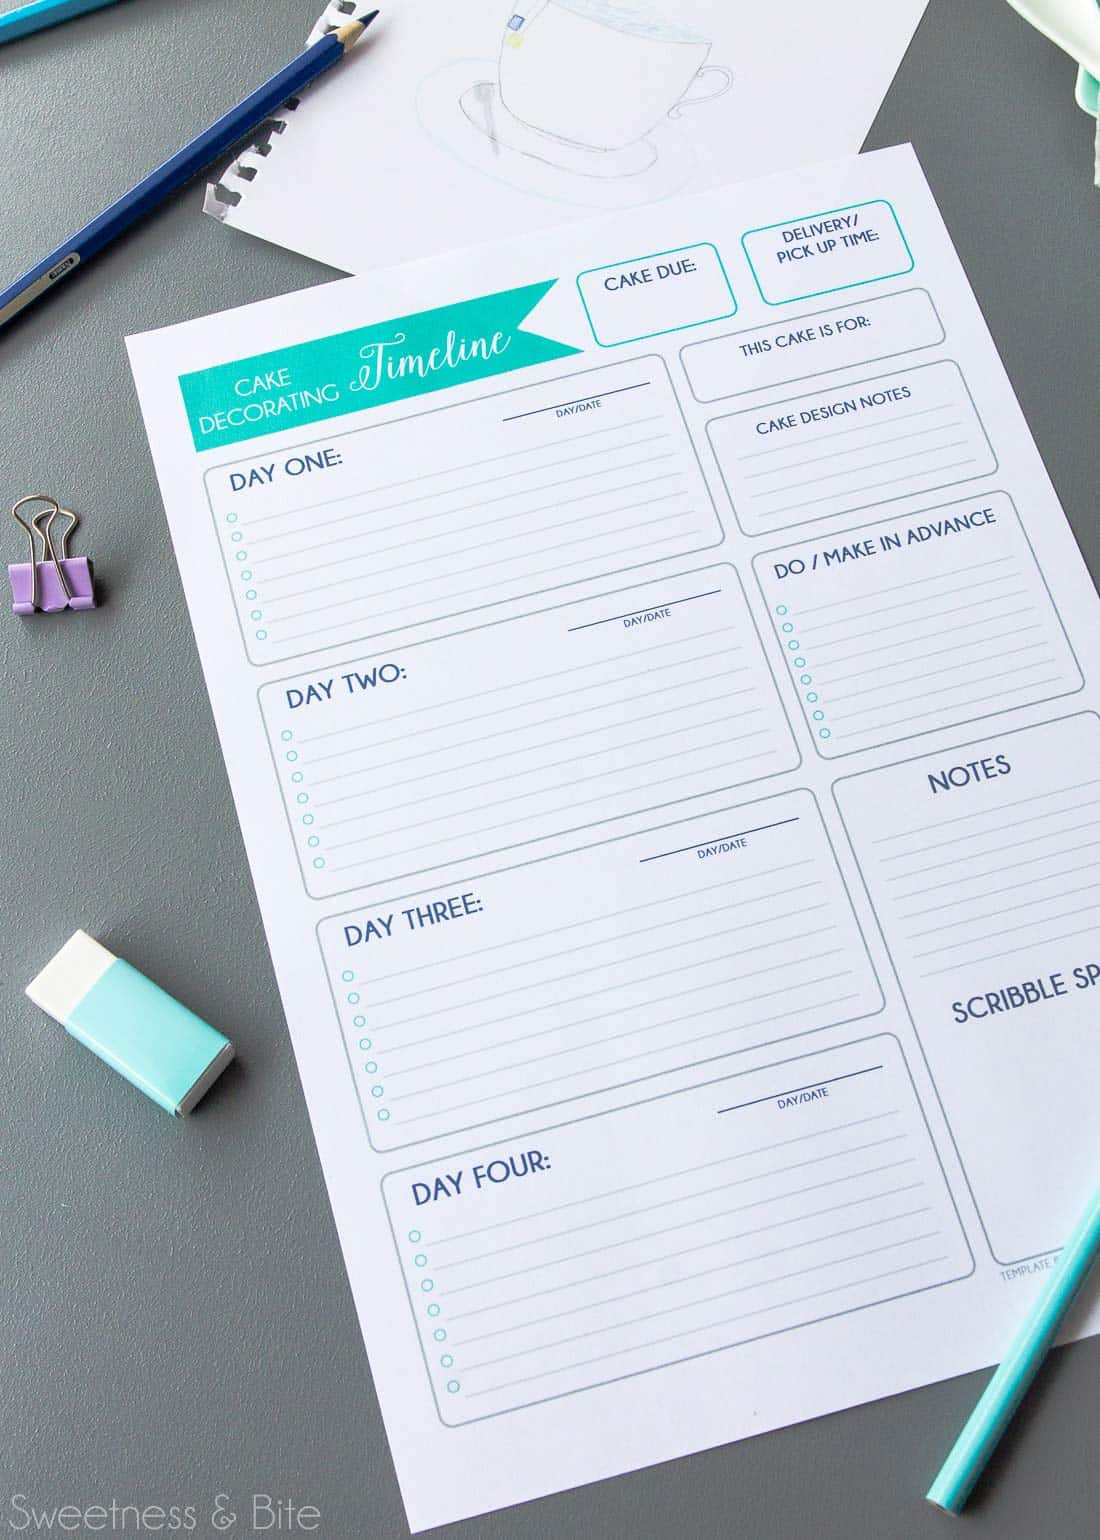 How to Write Your Own Cake Decorating Timeline with Free Printable Timeline Template ~ Sweetness and Bite